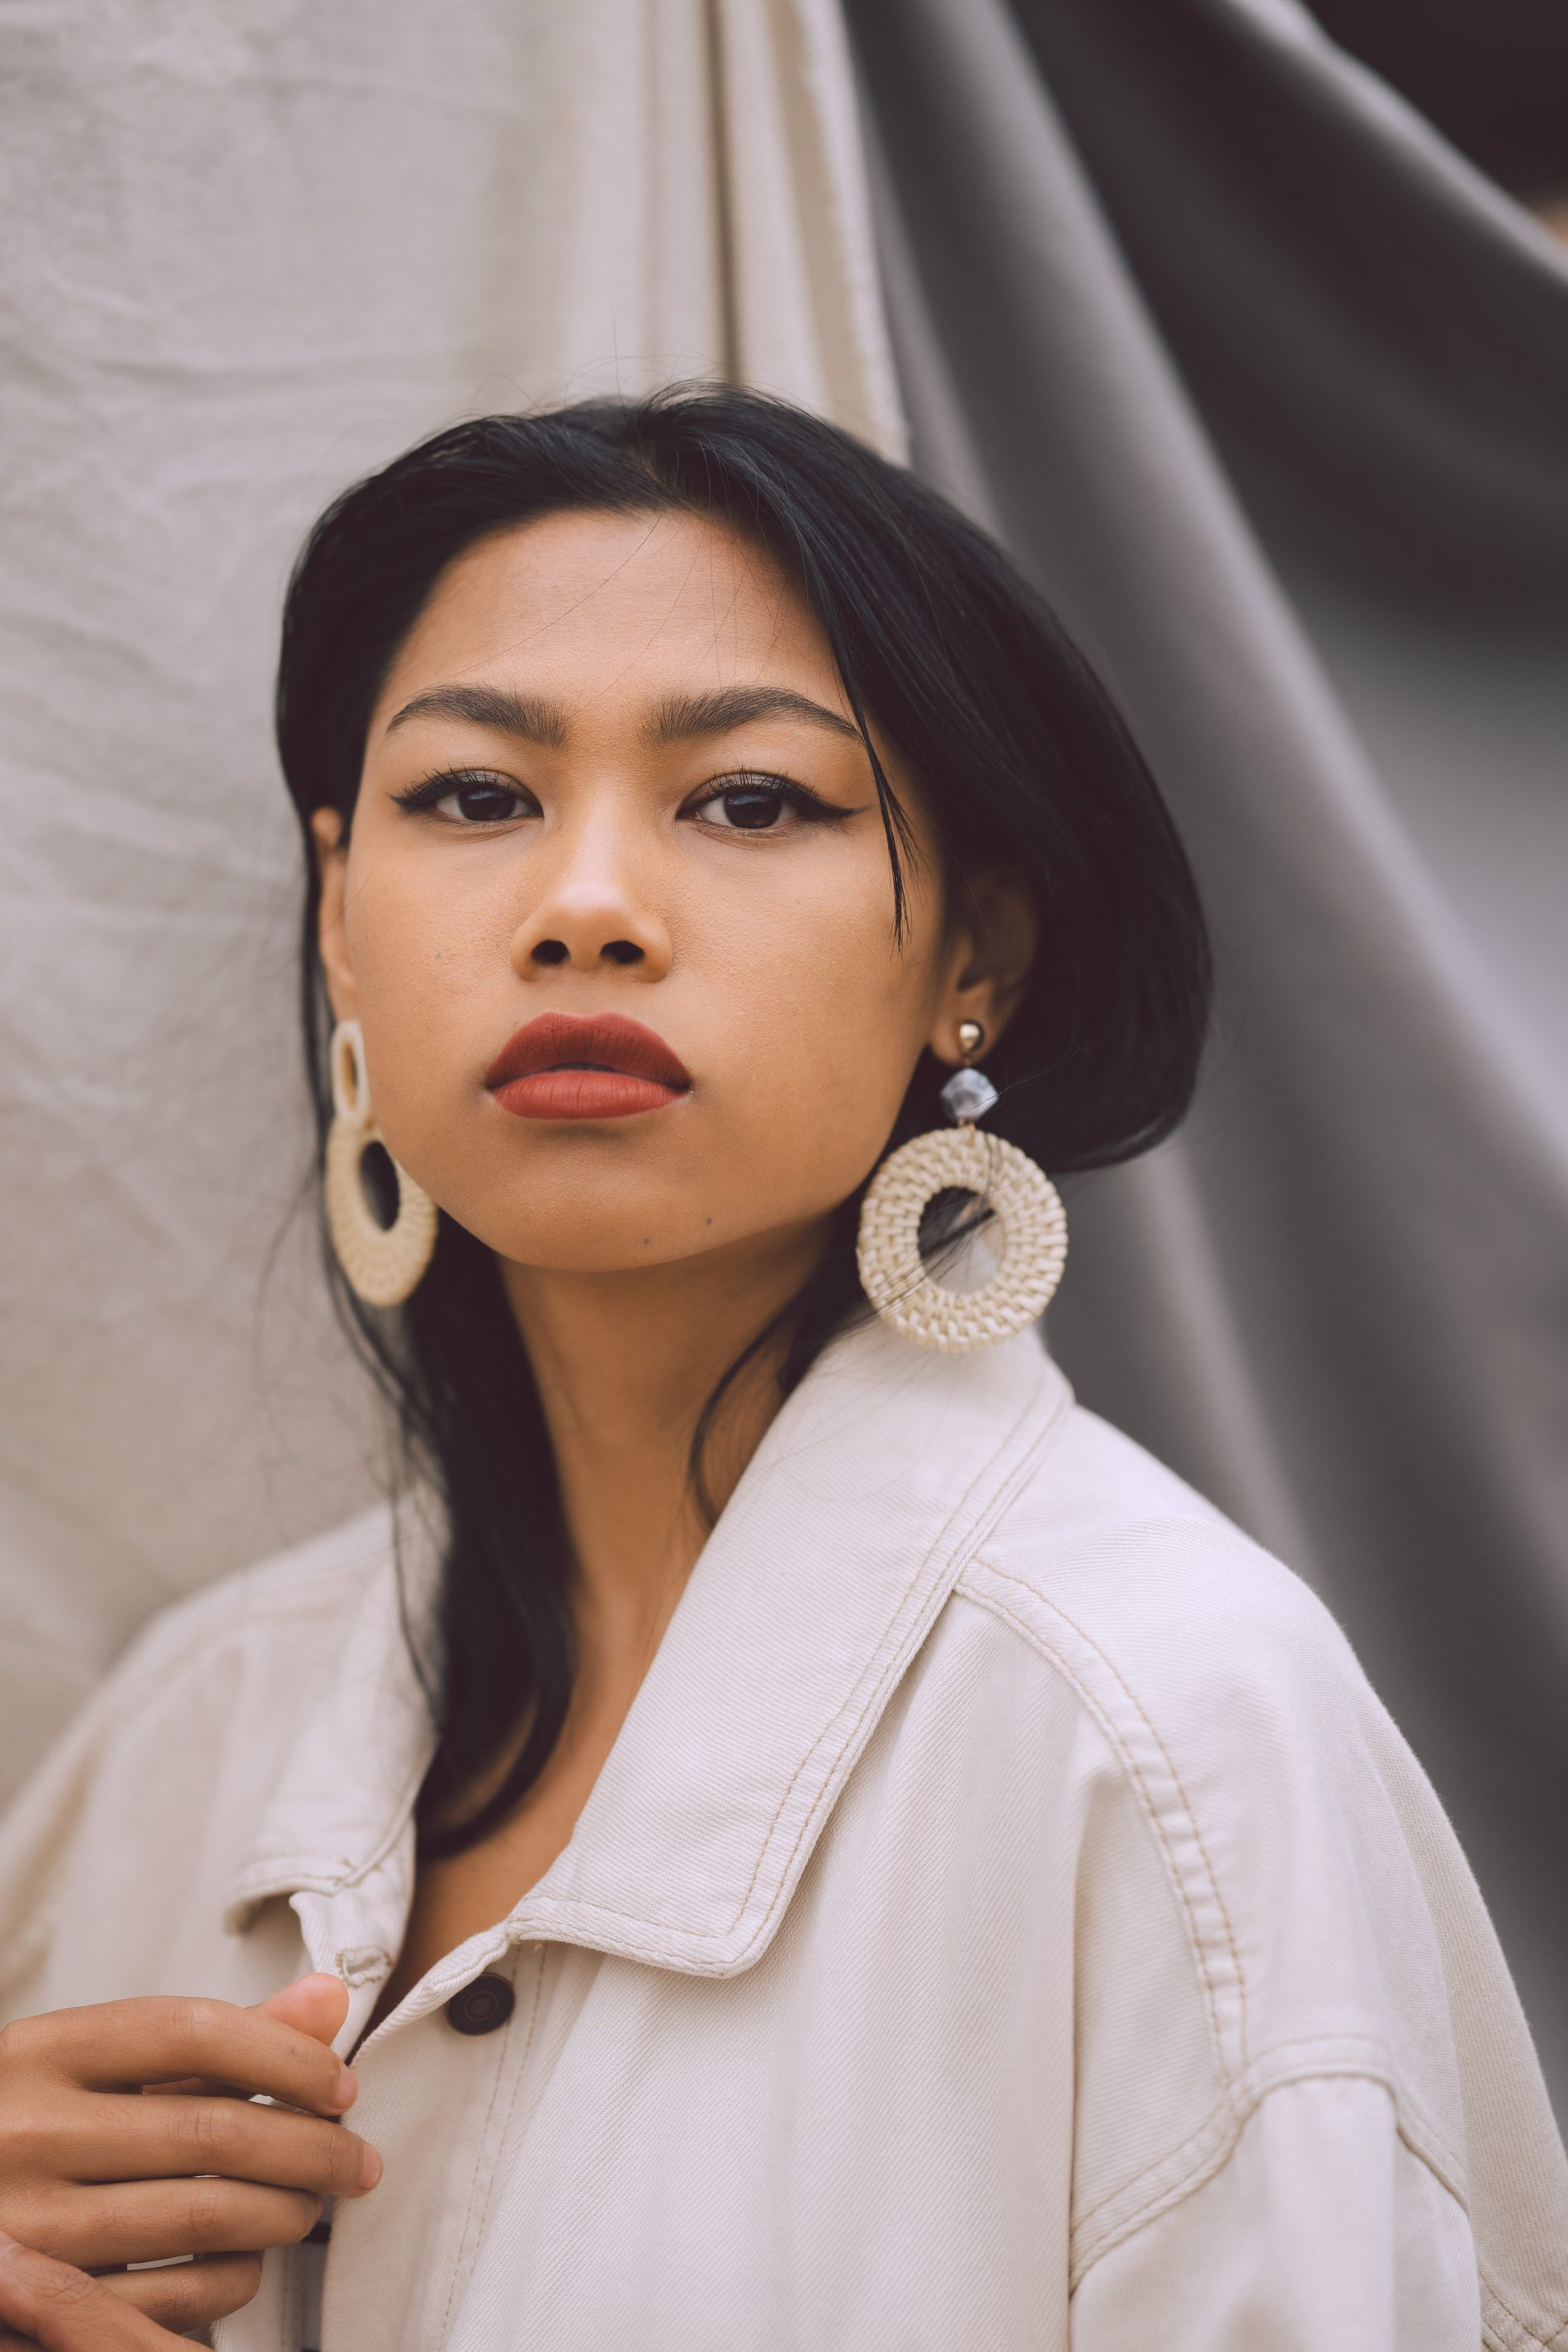 Stylish asian woman in light room